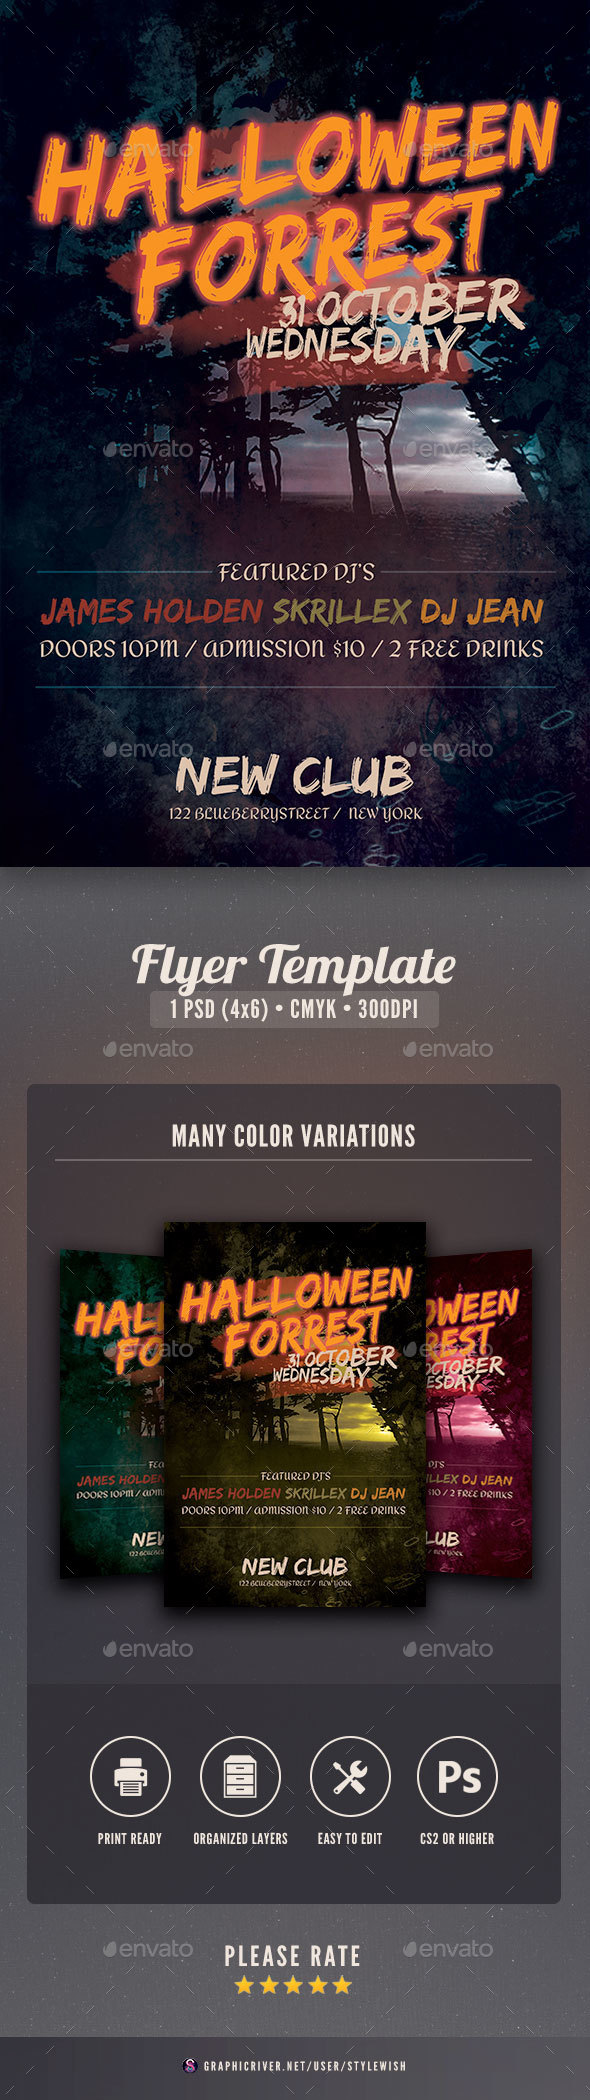 Halloween Forrest Flyer - Events Flyers